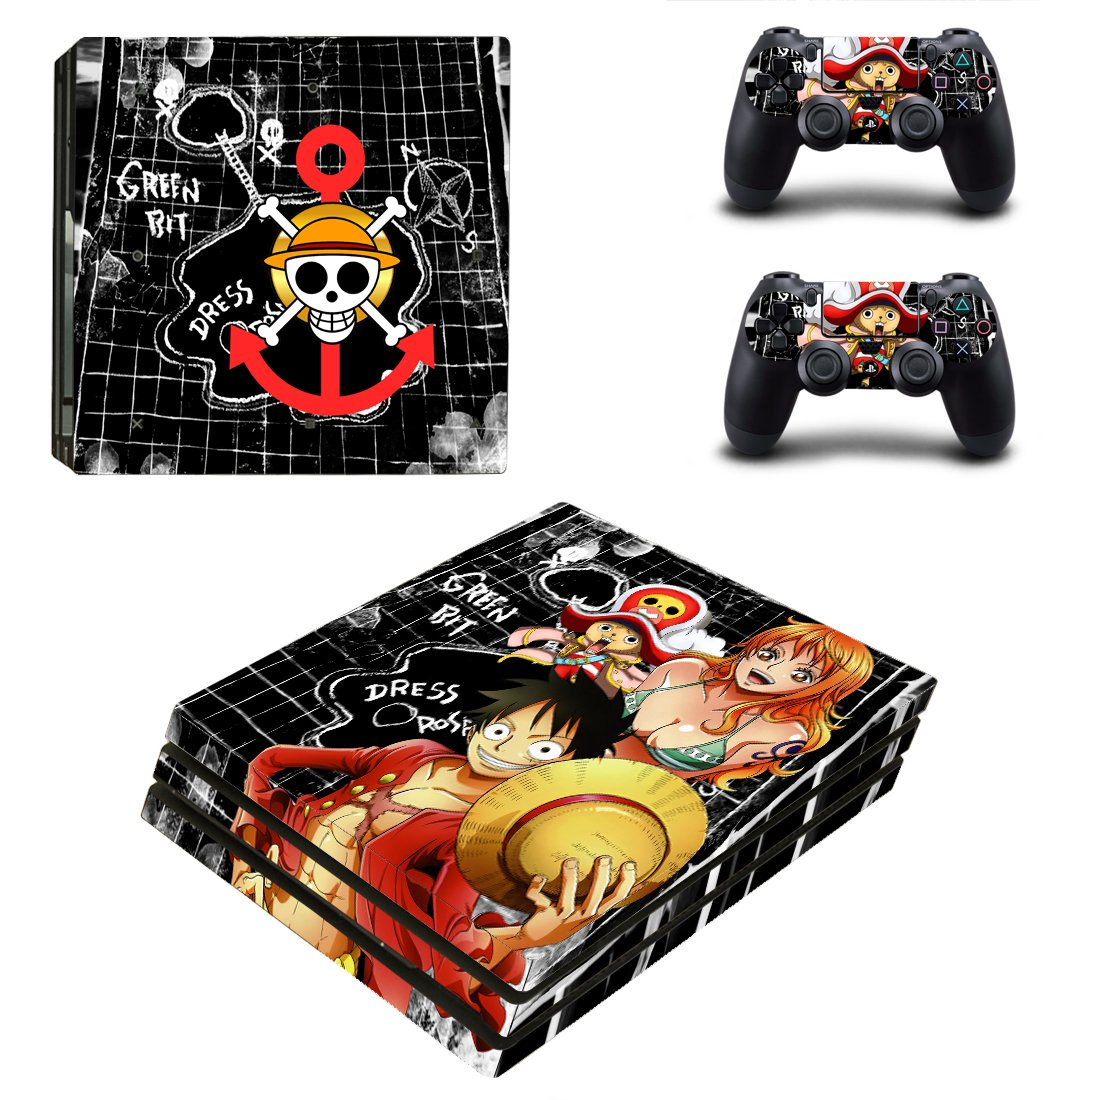 One Piece PS4 Pro Skin Sticker Decals PS4 Console And Controllers Protect Your PS4